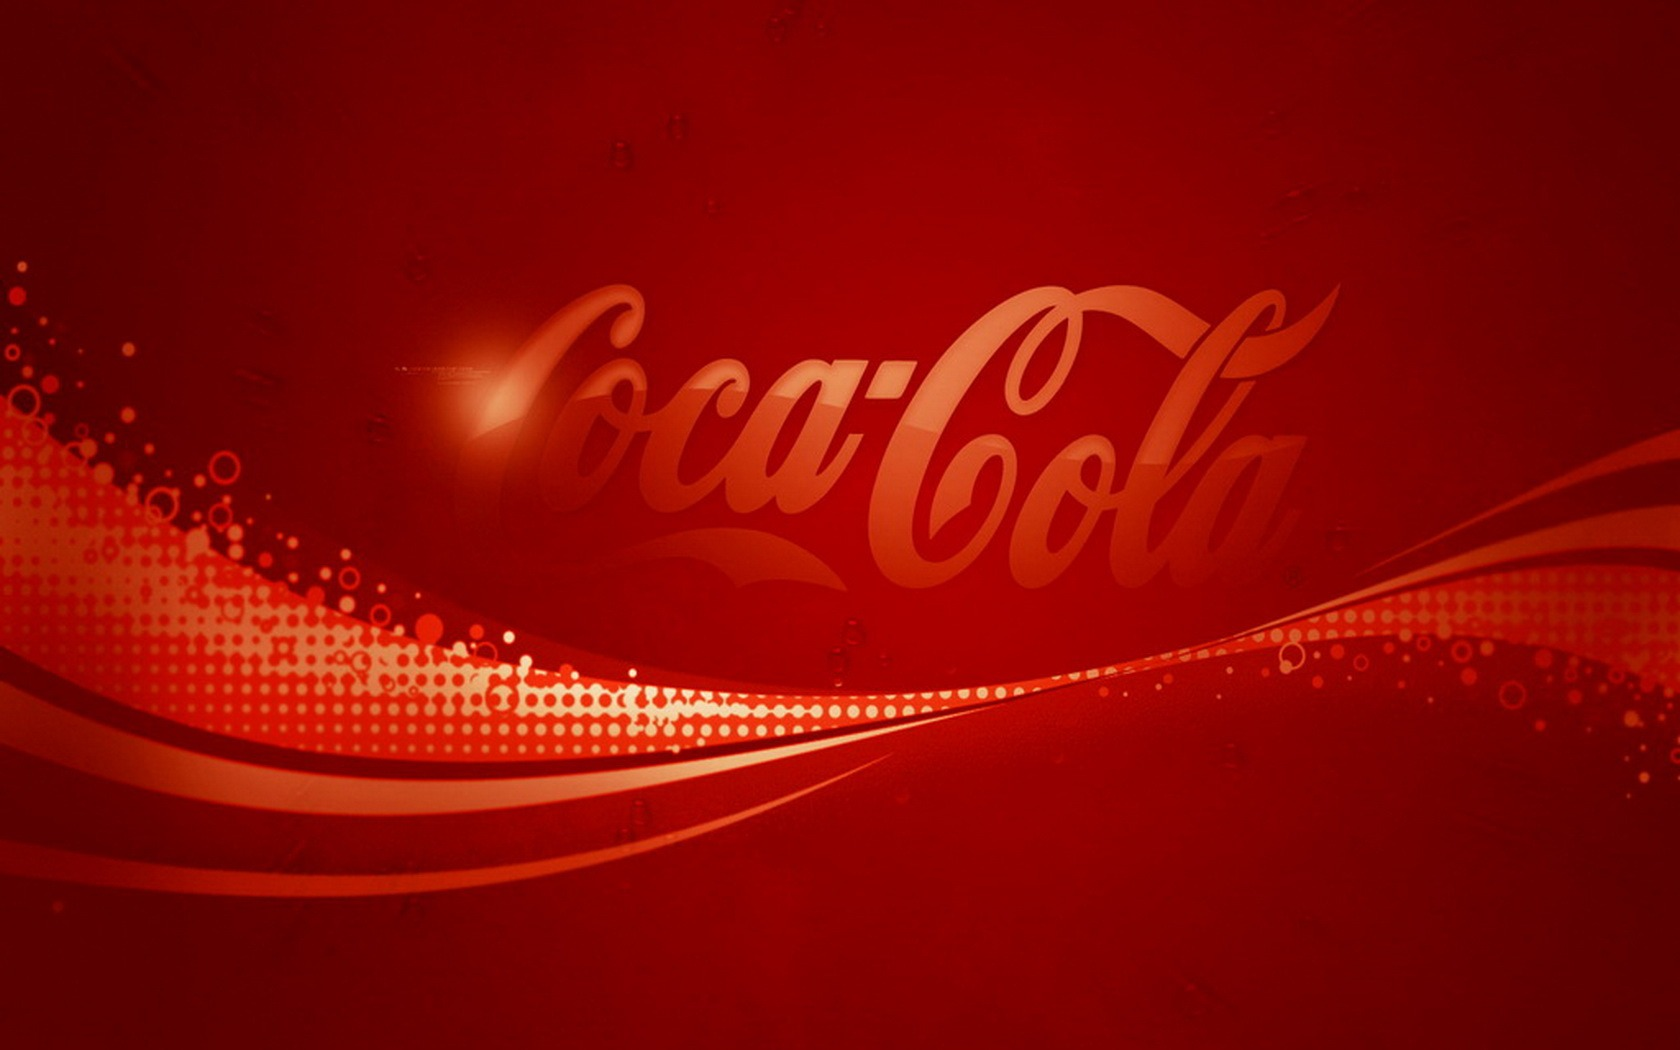 coca-cola-wallpaper